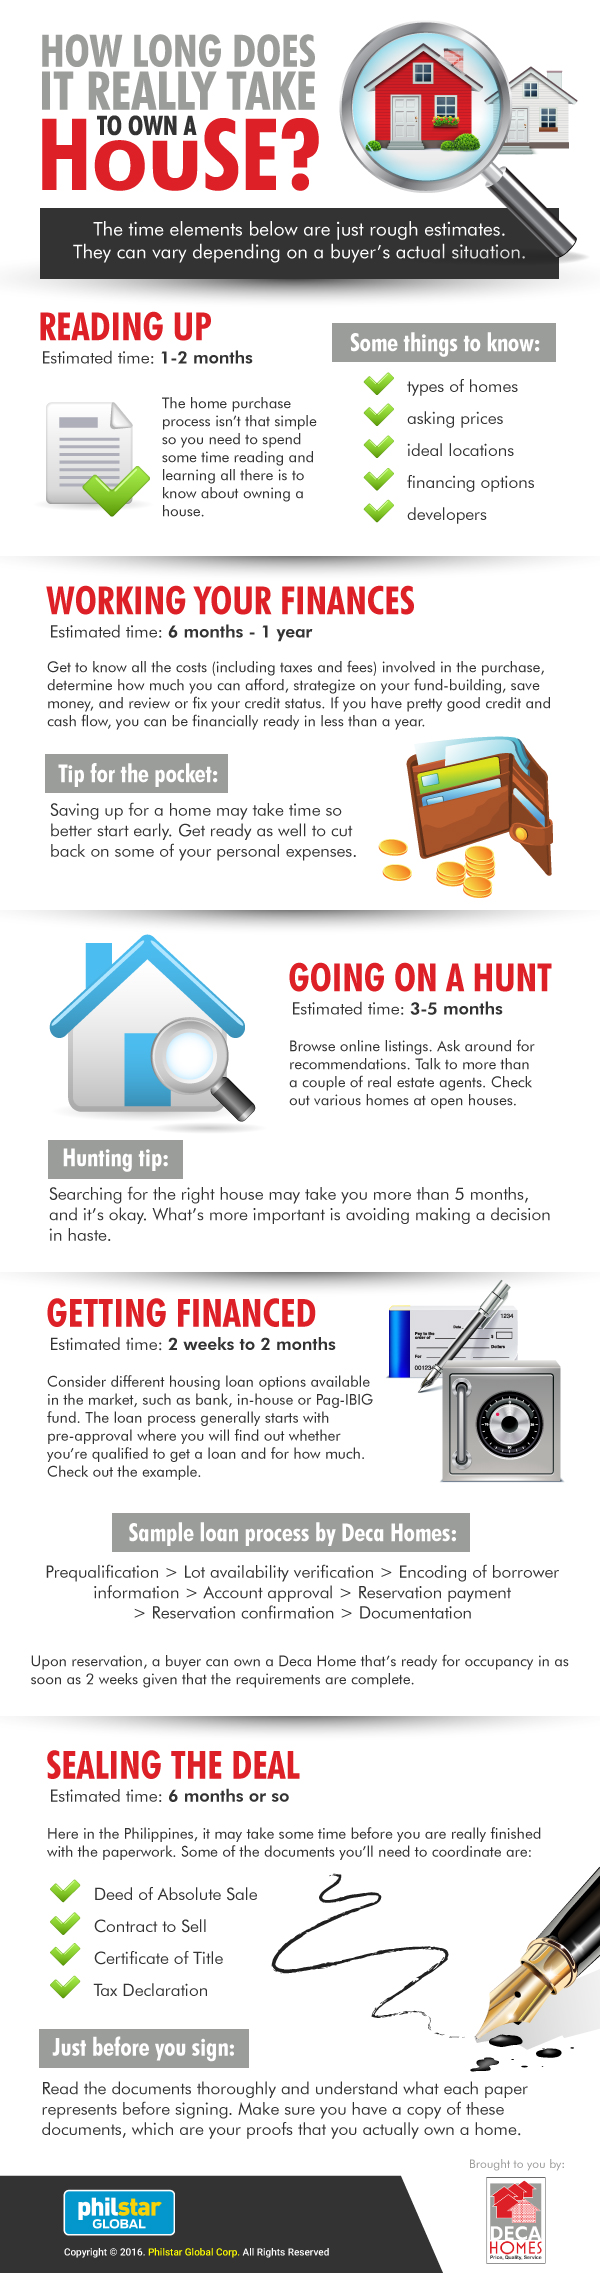 owning a home timeline infographic